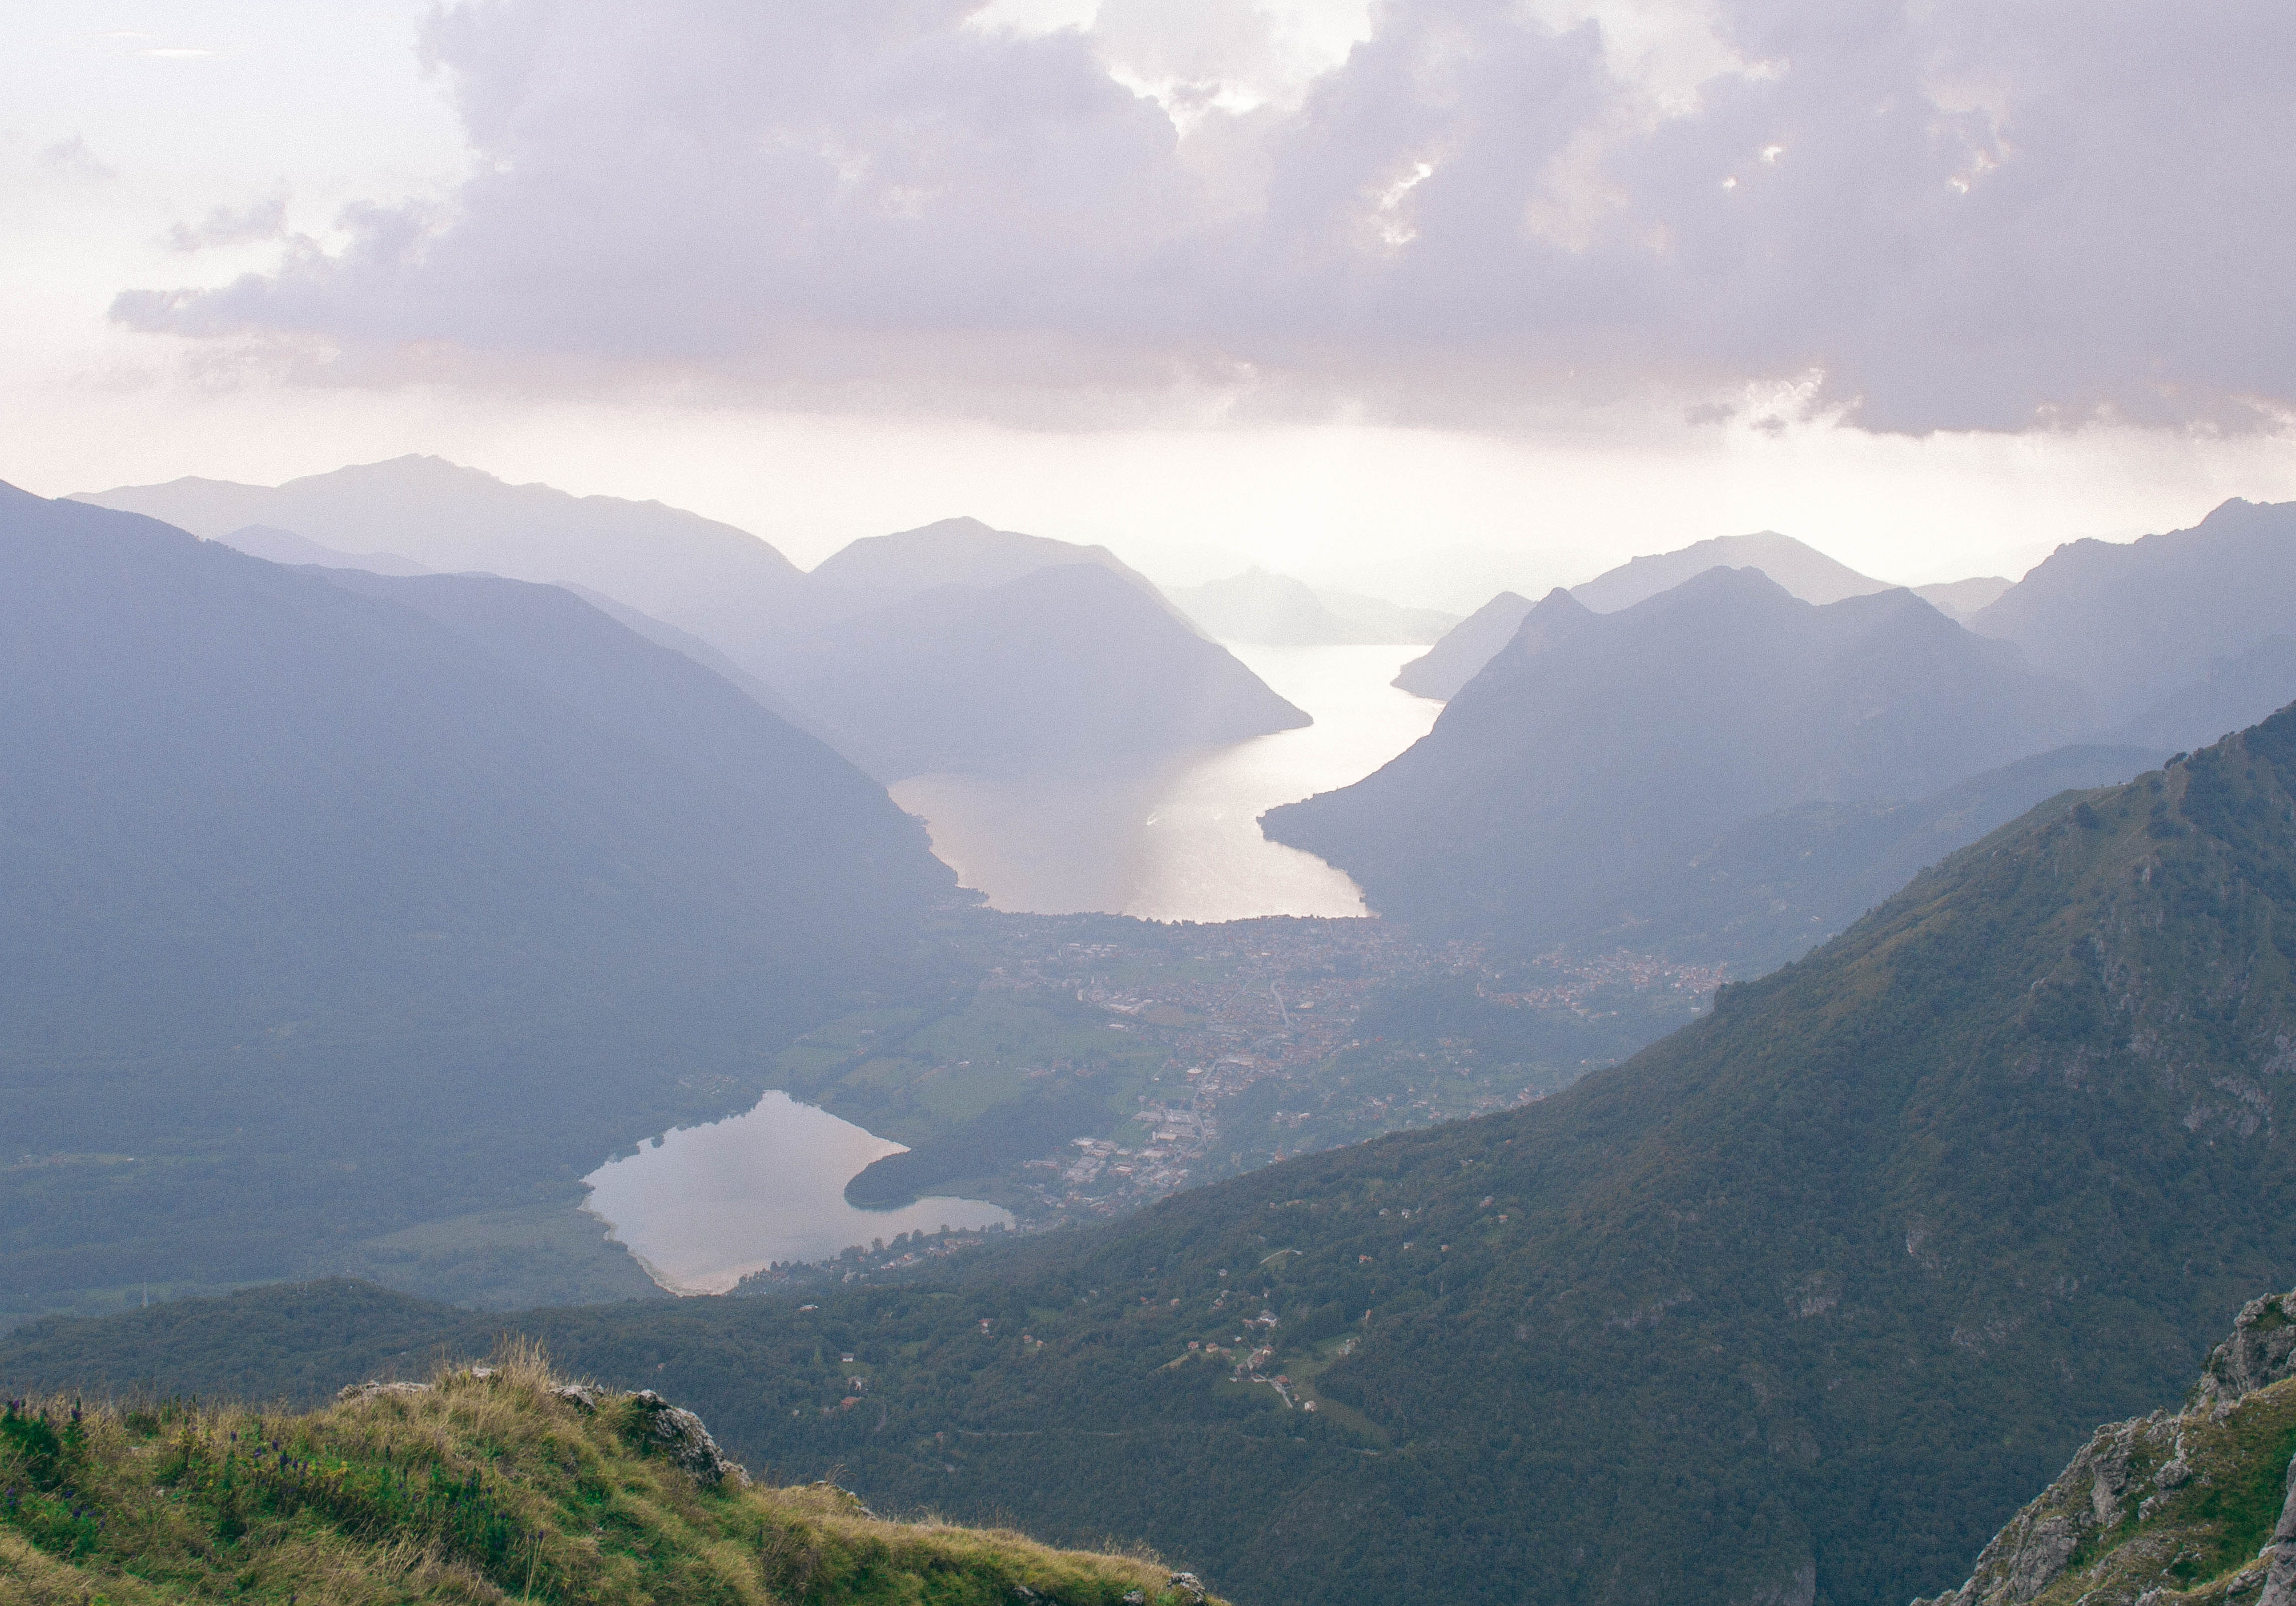 Lake in Valley, Clouds, Mountains, View point, View, HQ Photo